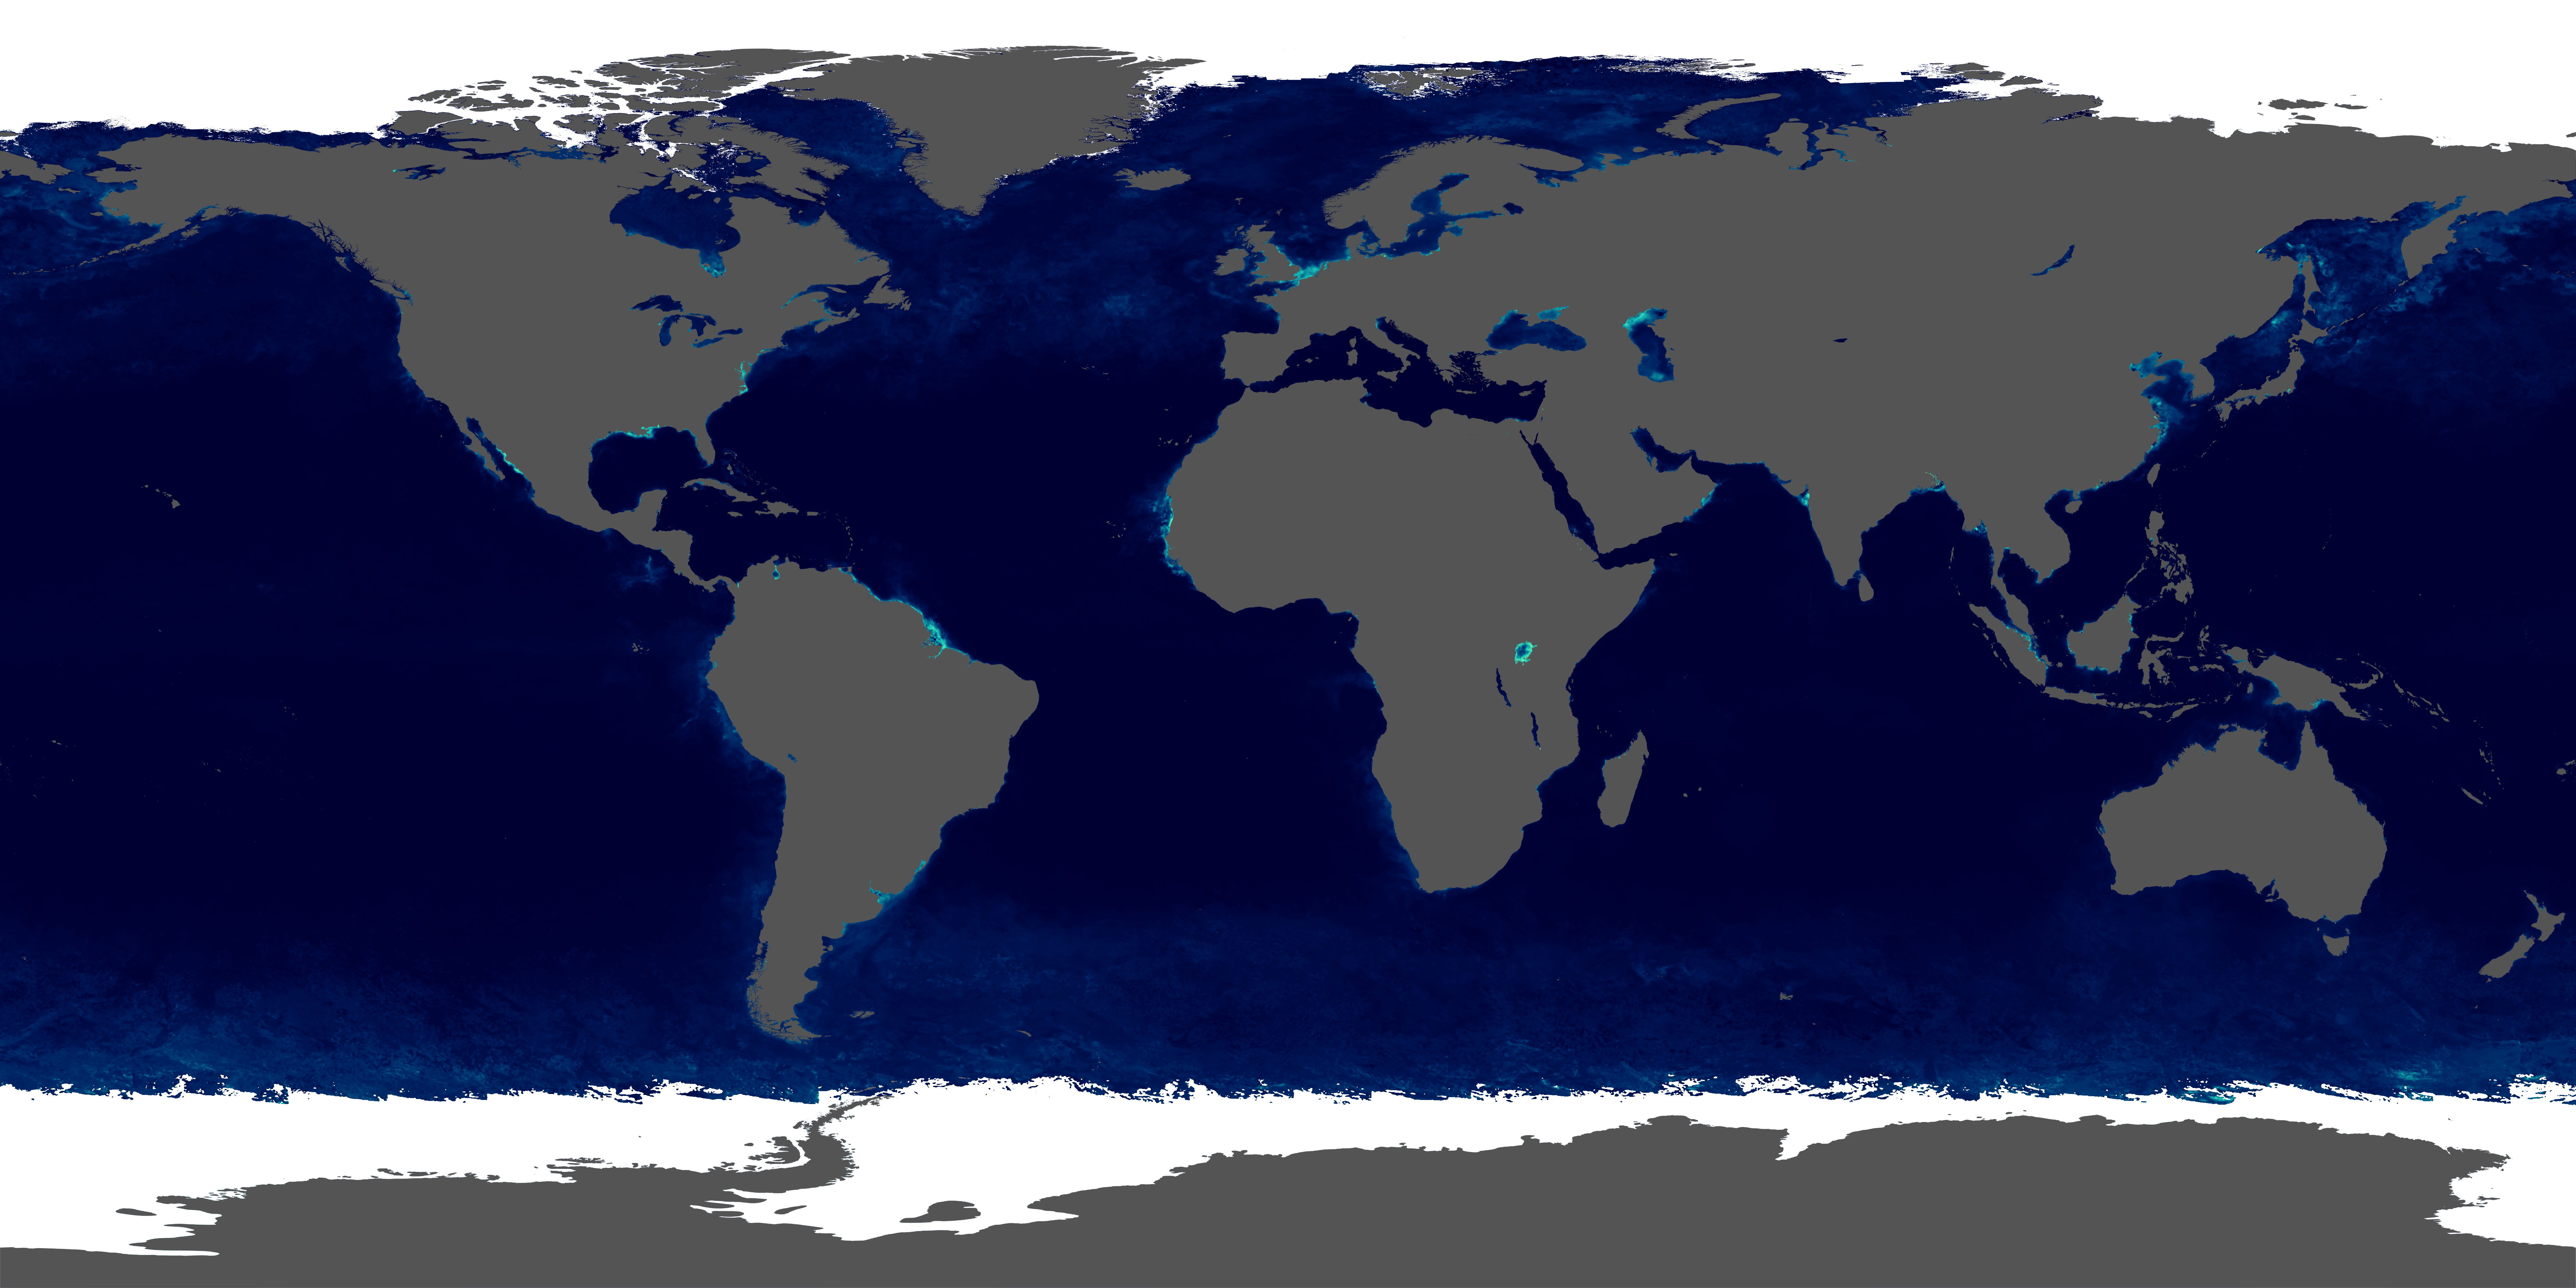 earth map nasa - photo #17